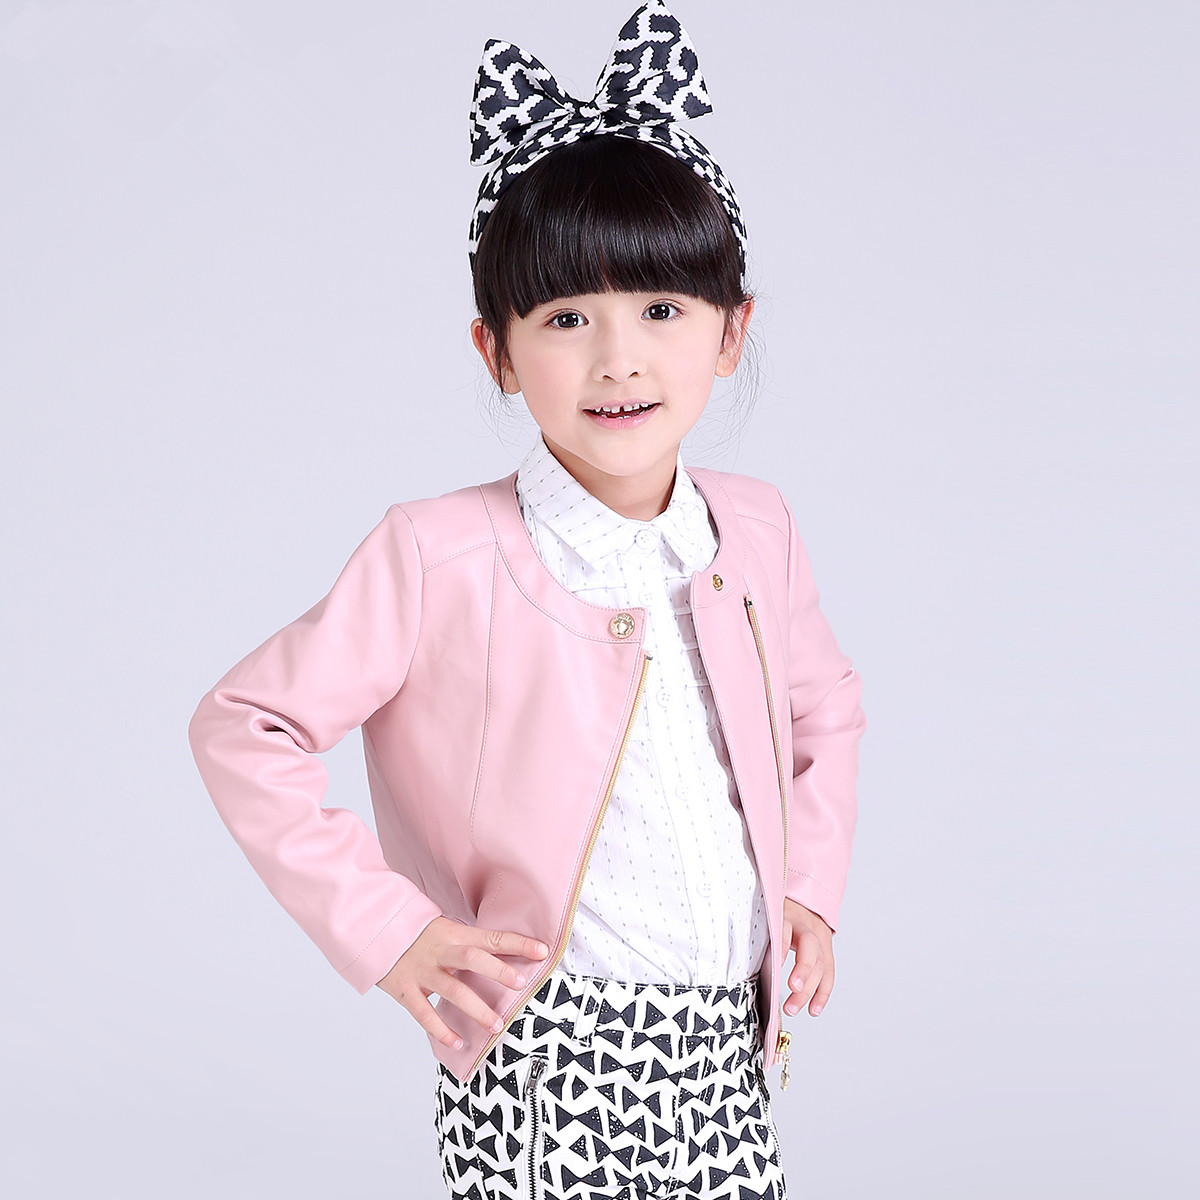 Leather jackets for kids - New 2017 Spring Baby Girls Clothes Children Clothing Leisure Coats And Jackets Fashion Leather Jacket Kids